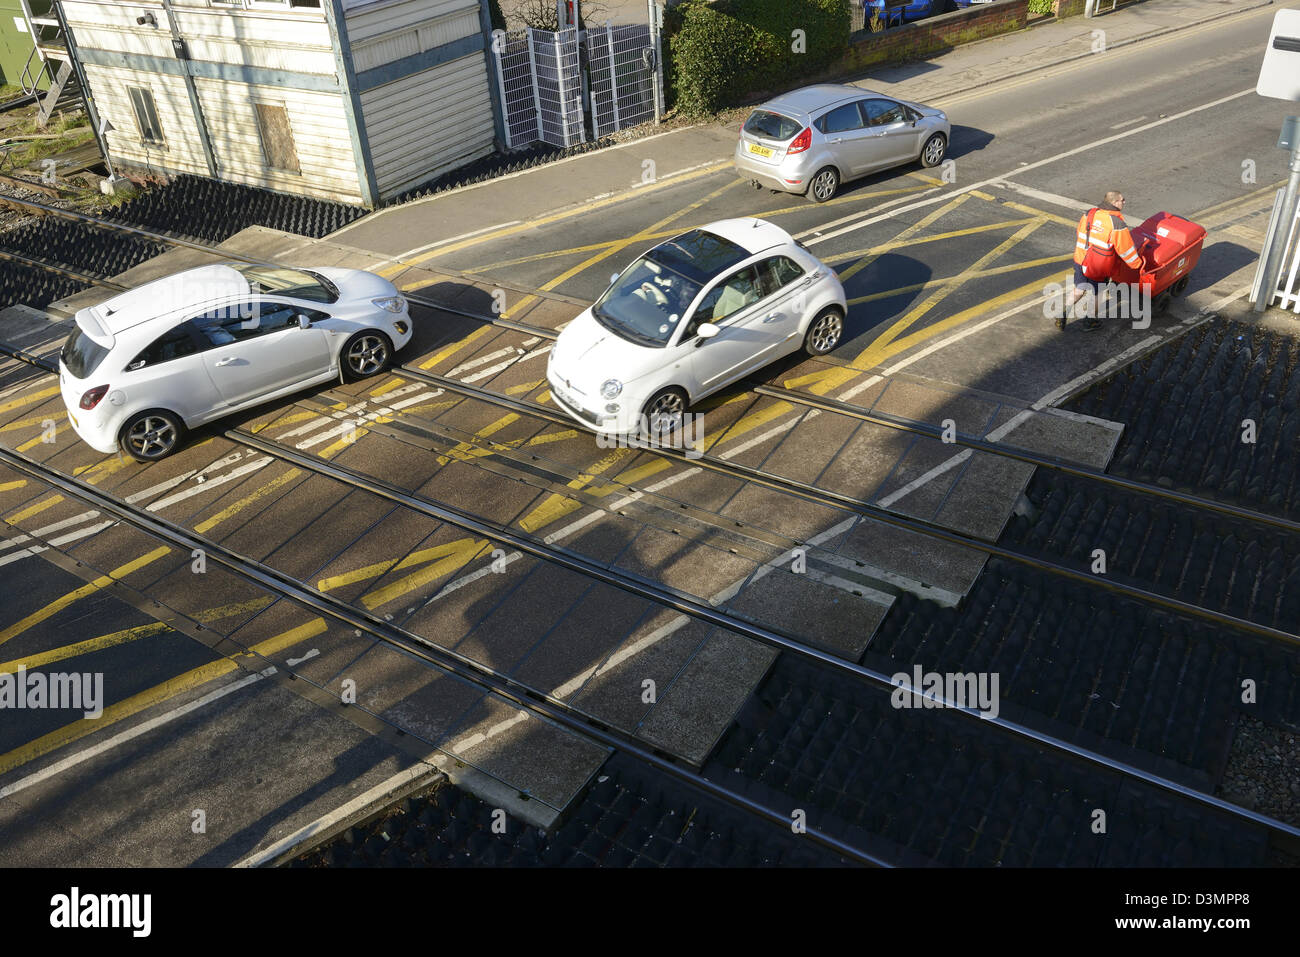 Traffic driving across the tracks of a level crossing - Stock Image